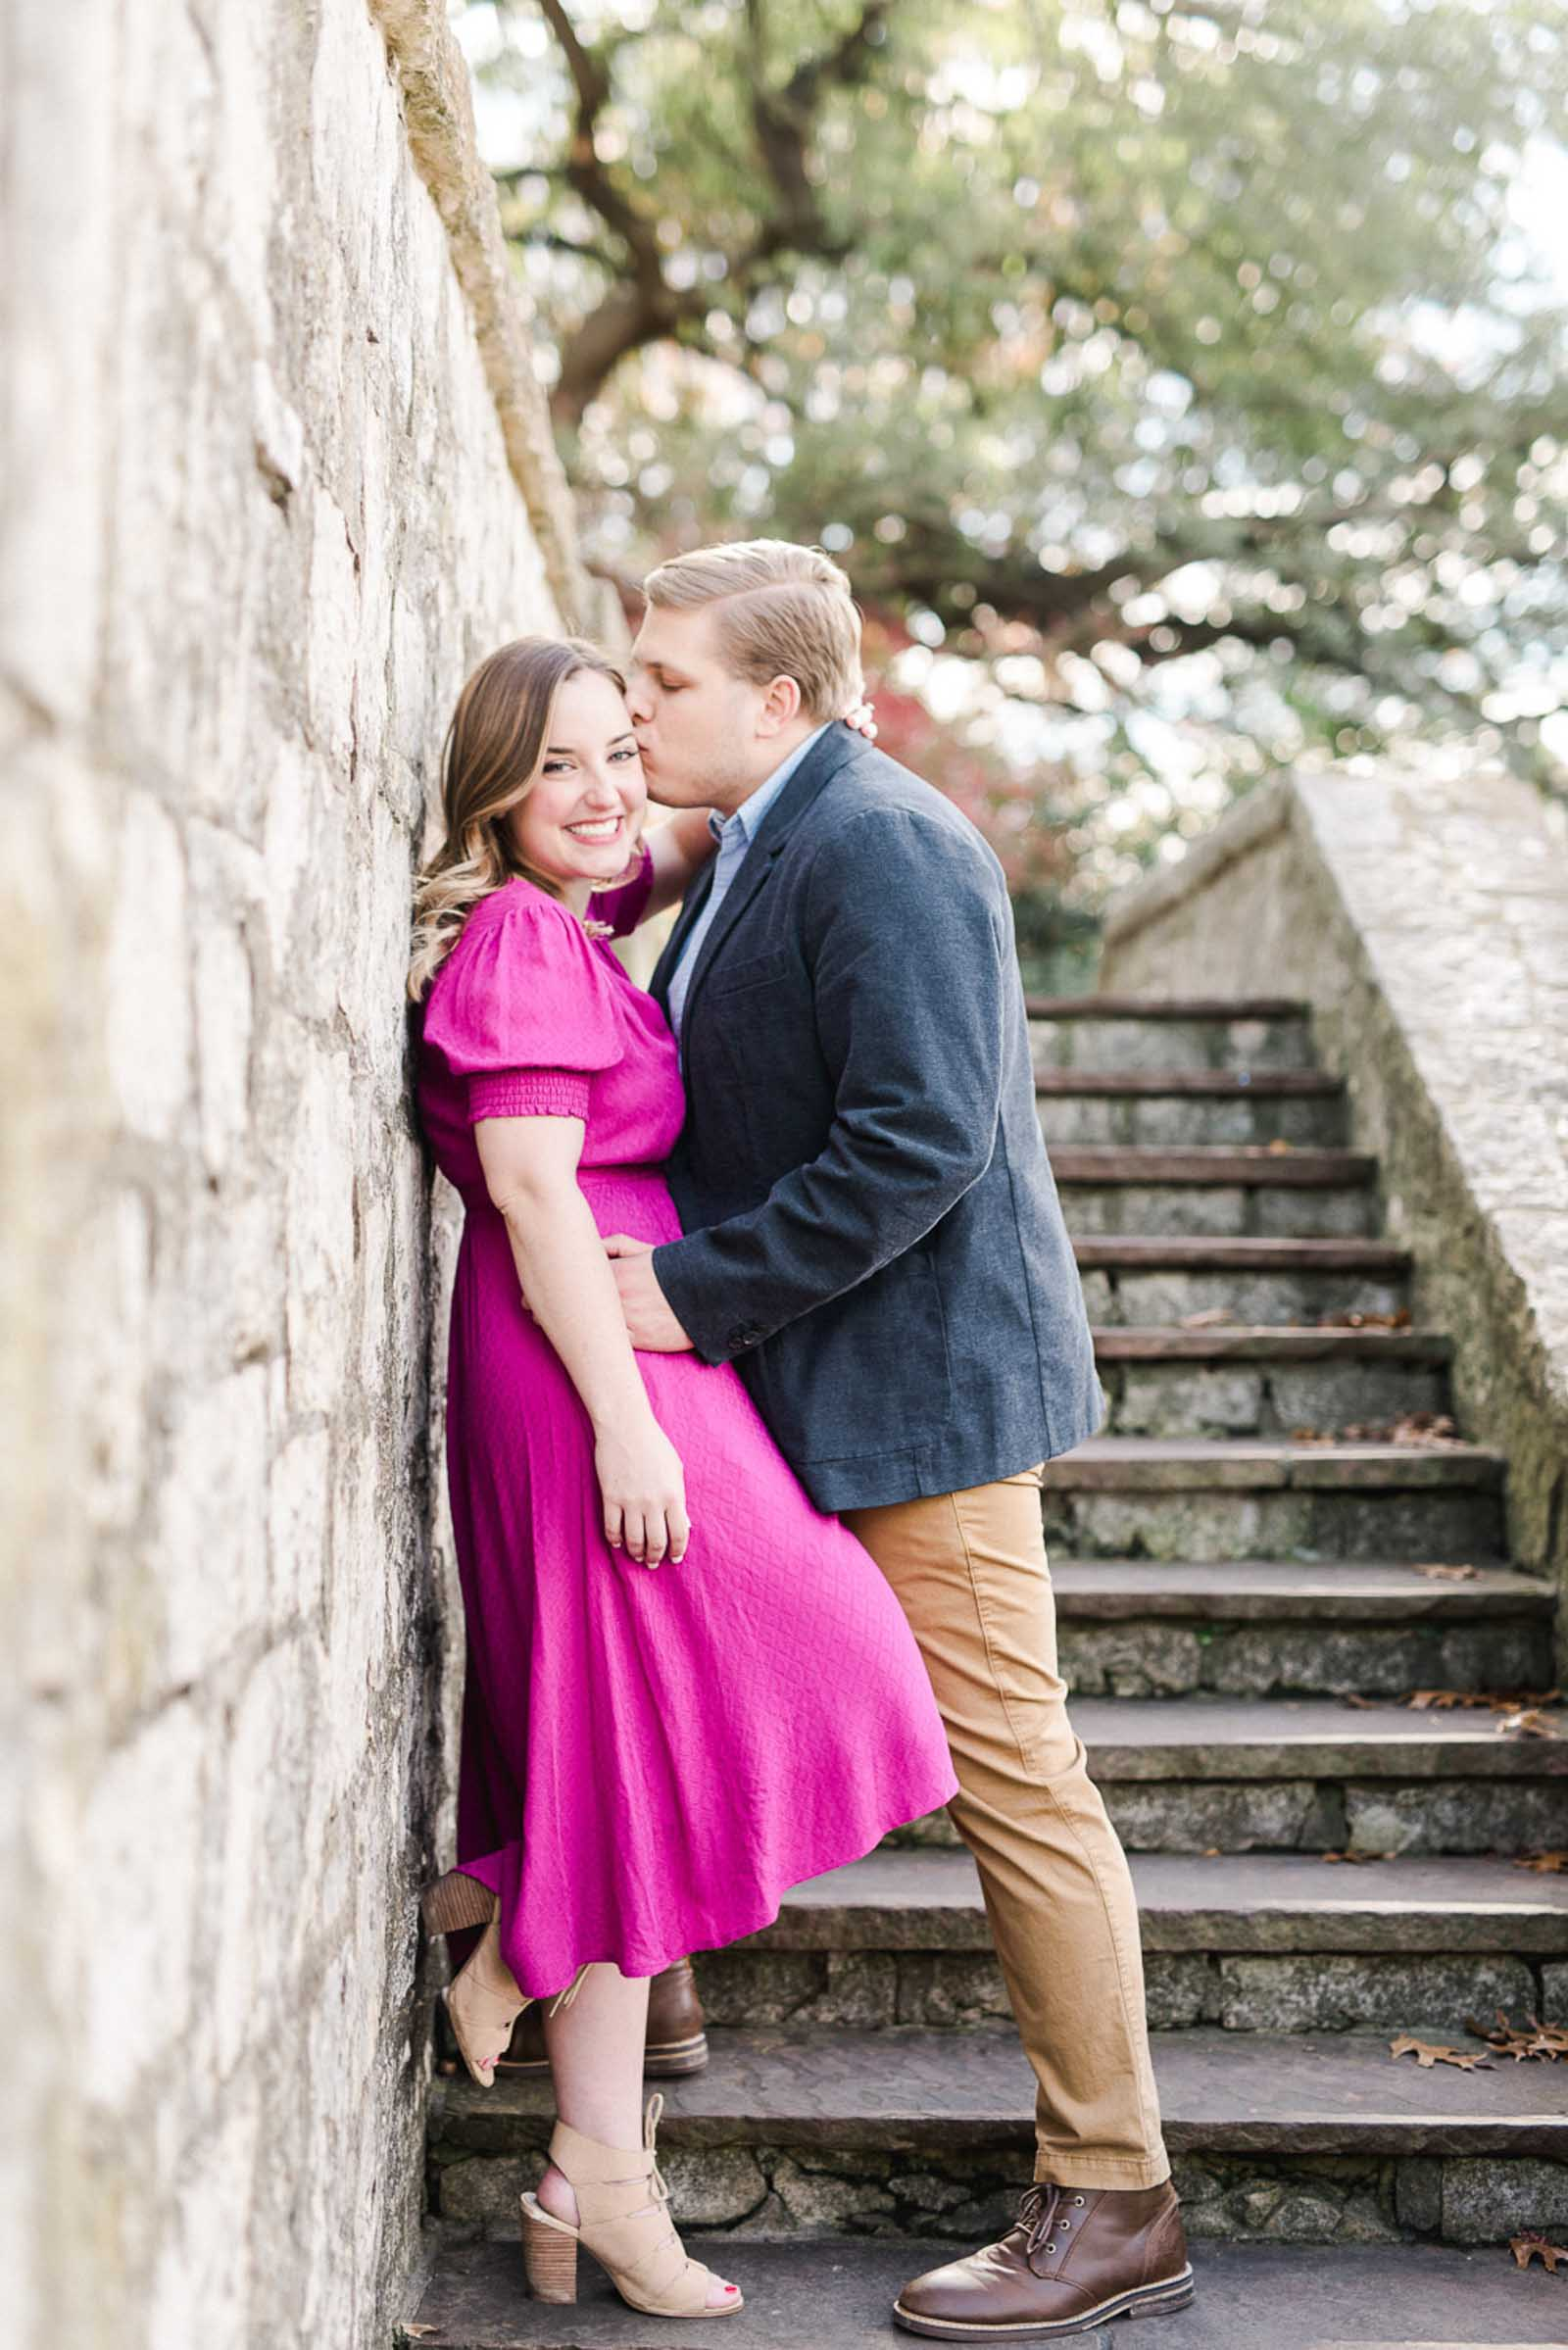 Dallas Arboretum Engagement-JenSymes-22.jpg